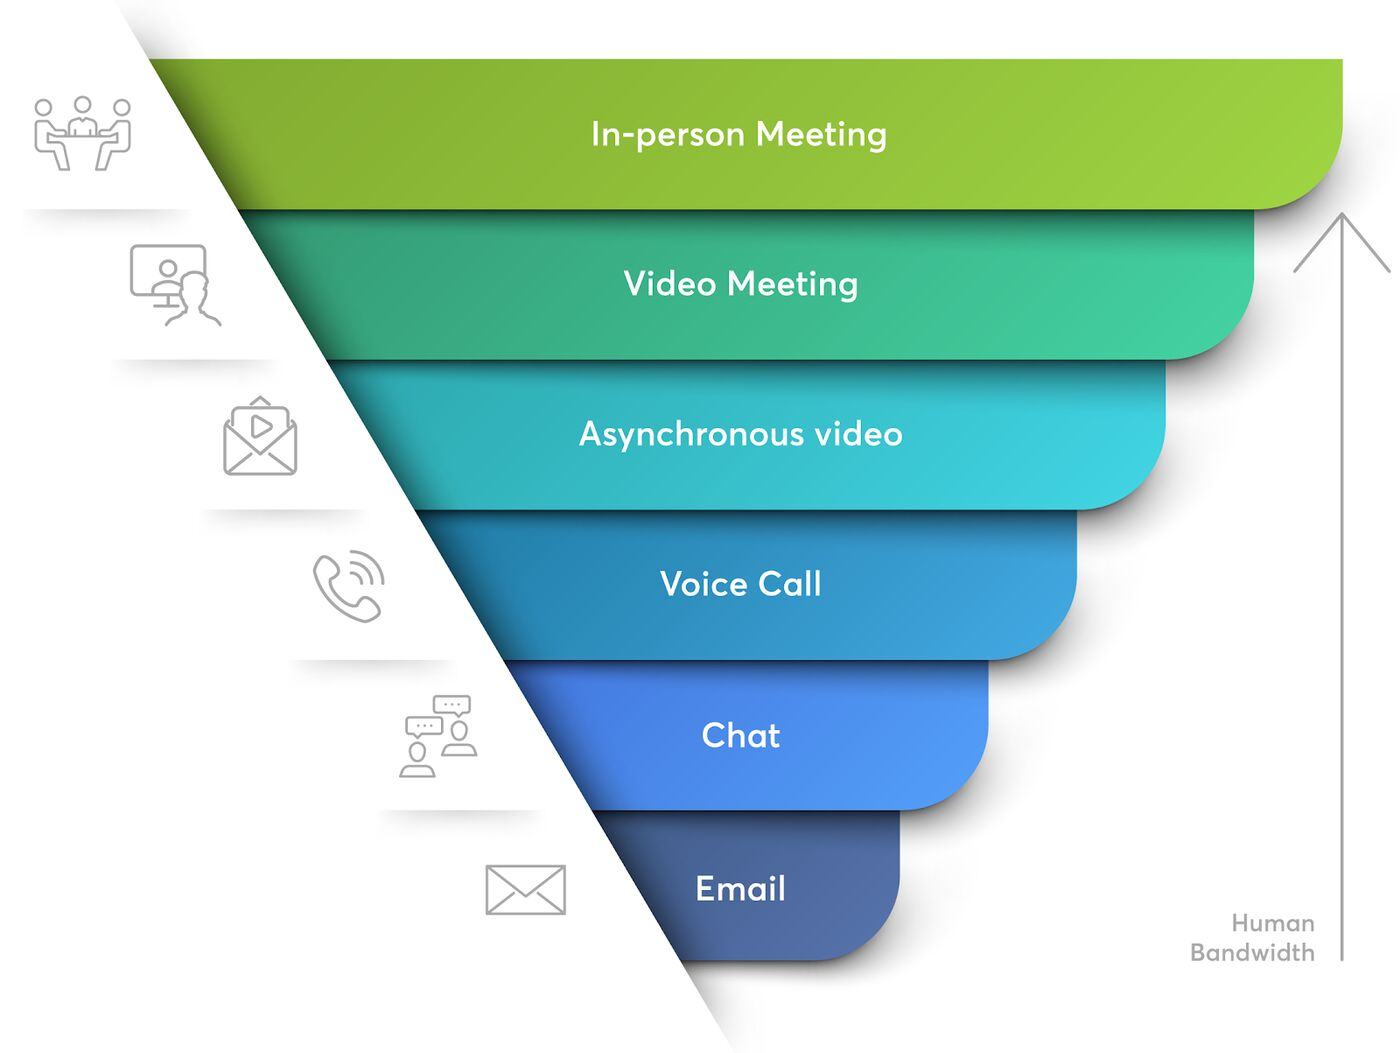 This chart shows the progression of communication bandwidth from high (in-person meetings) to low (email)